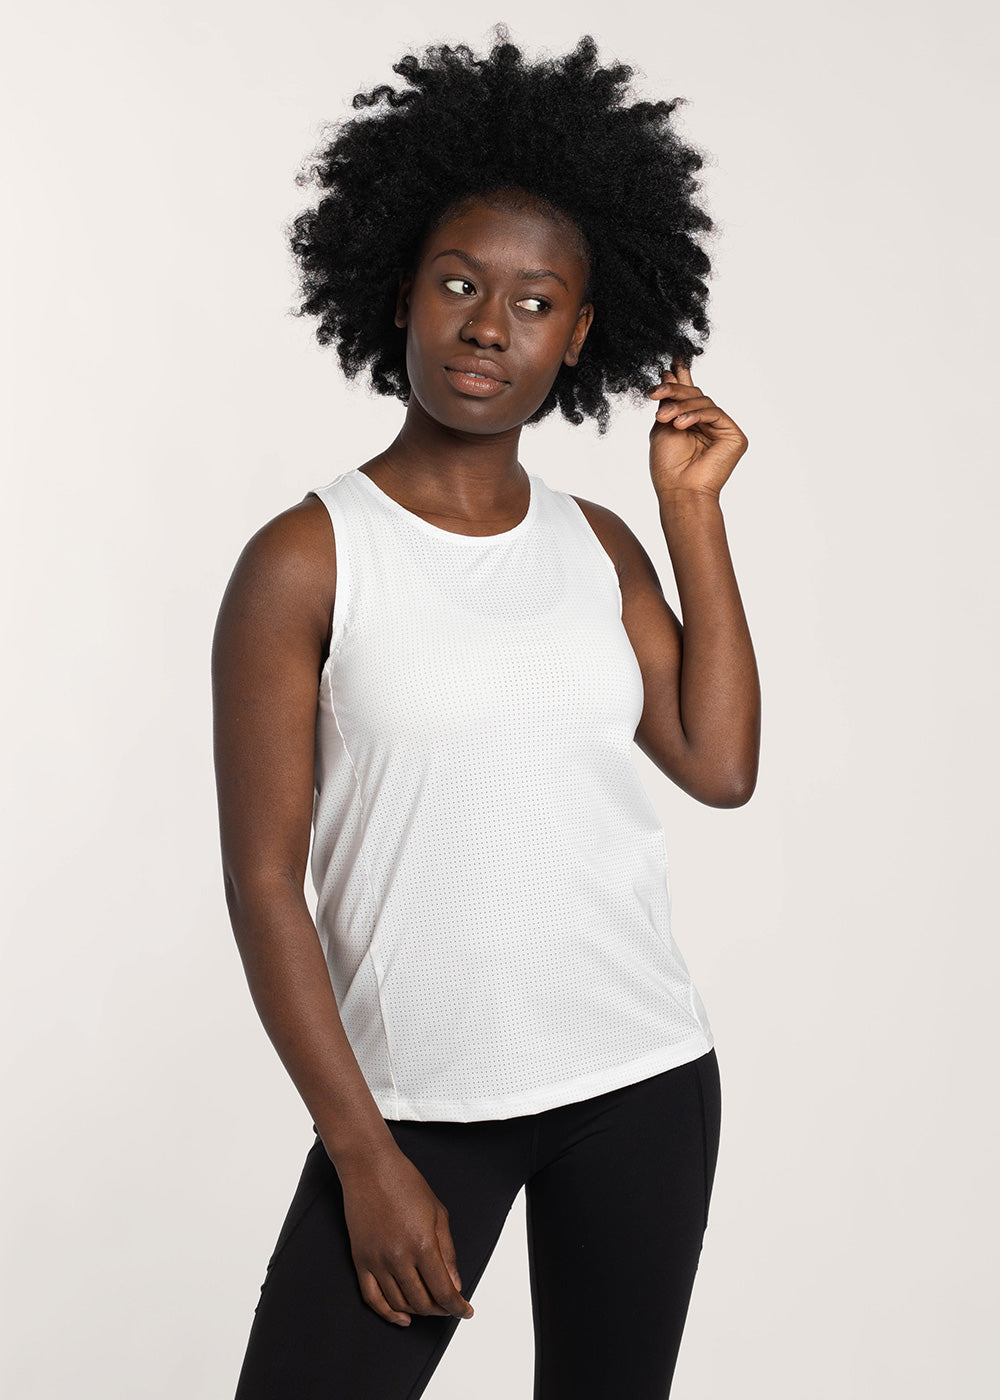 Model : Mariama - Size 4, Mariama is 5'7 | PRIMARY | WHITE